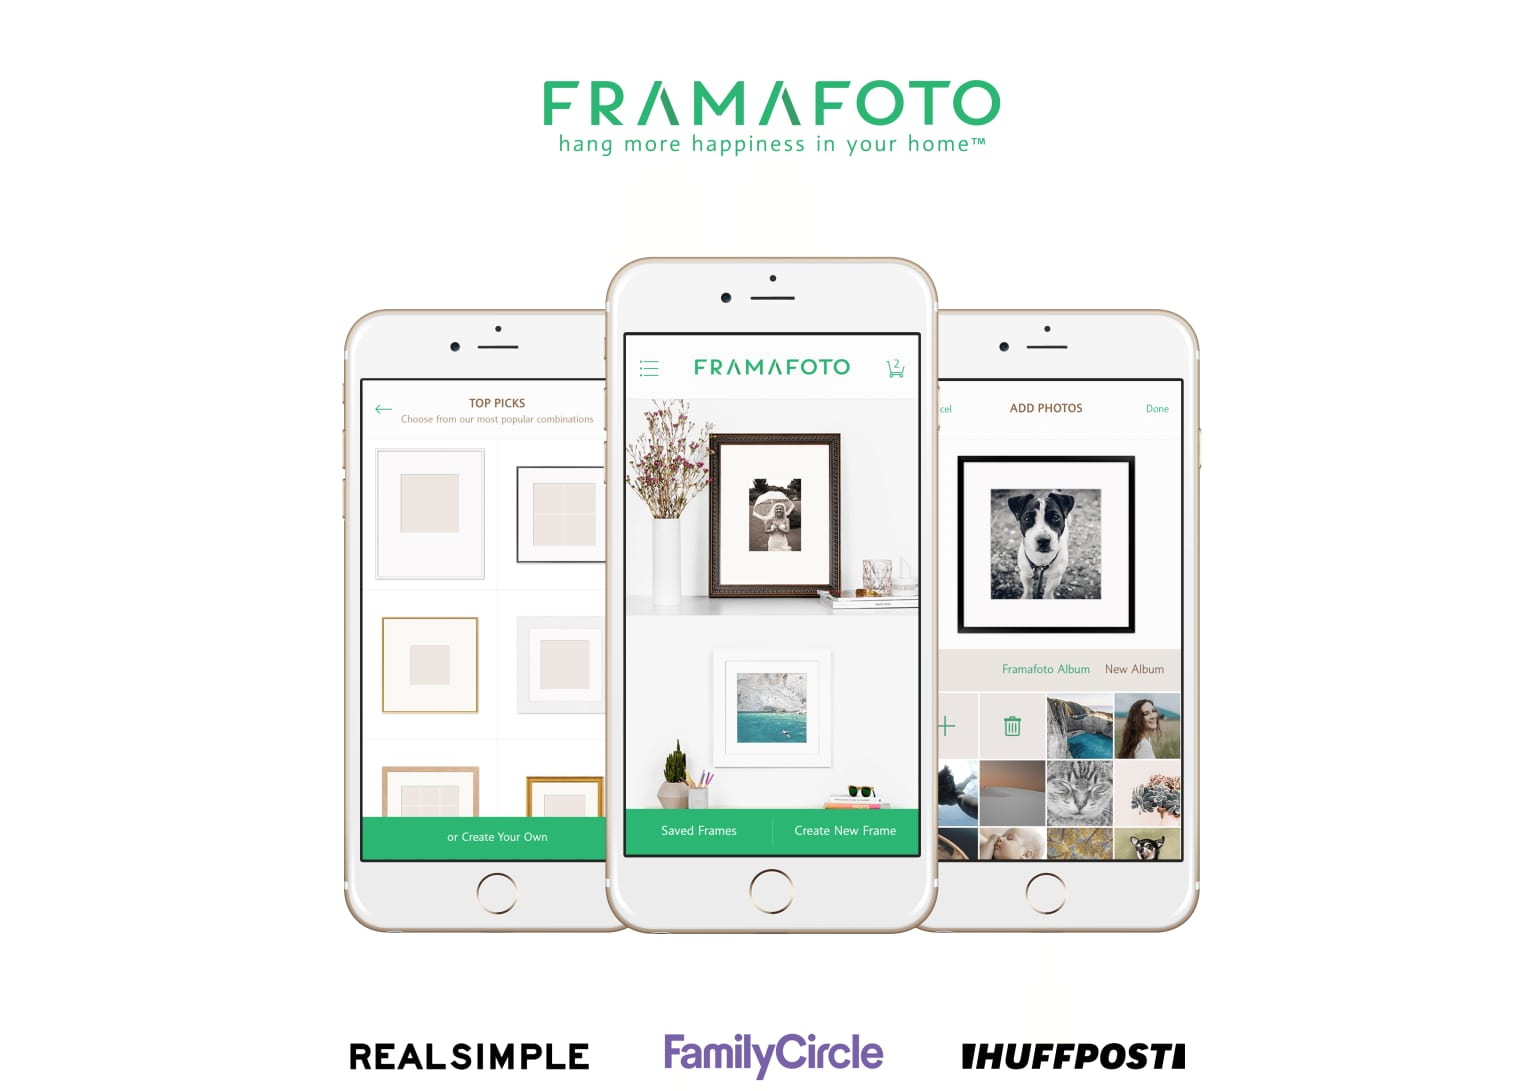 Framafoto App and Brand Launch